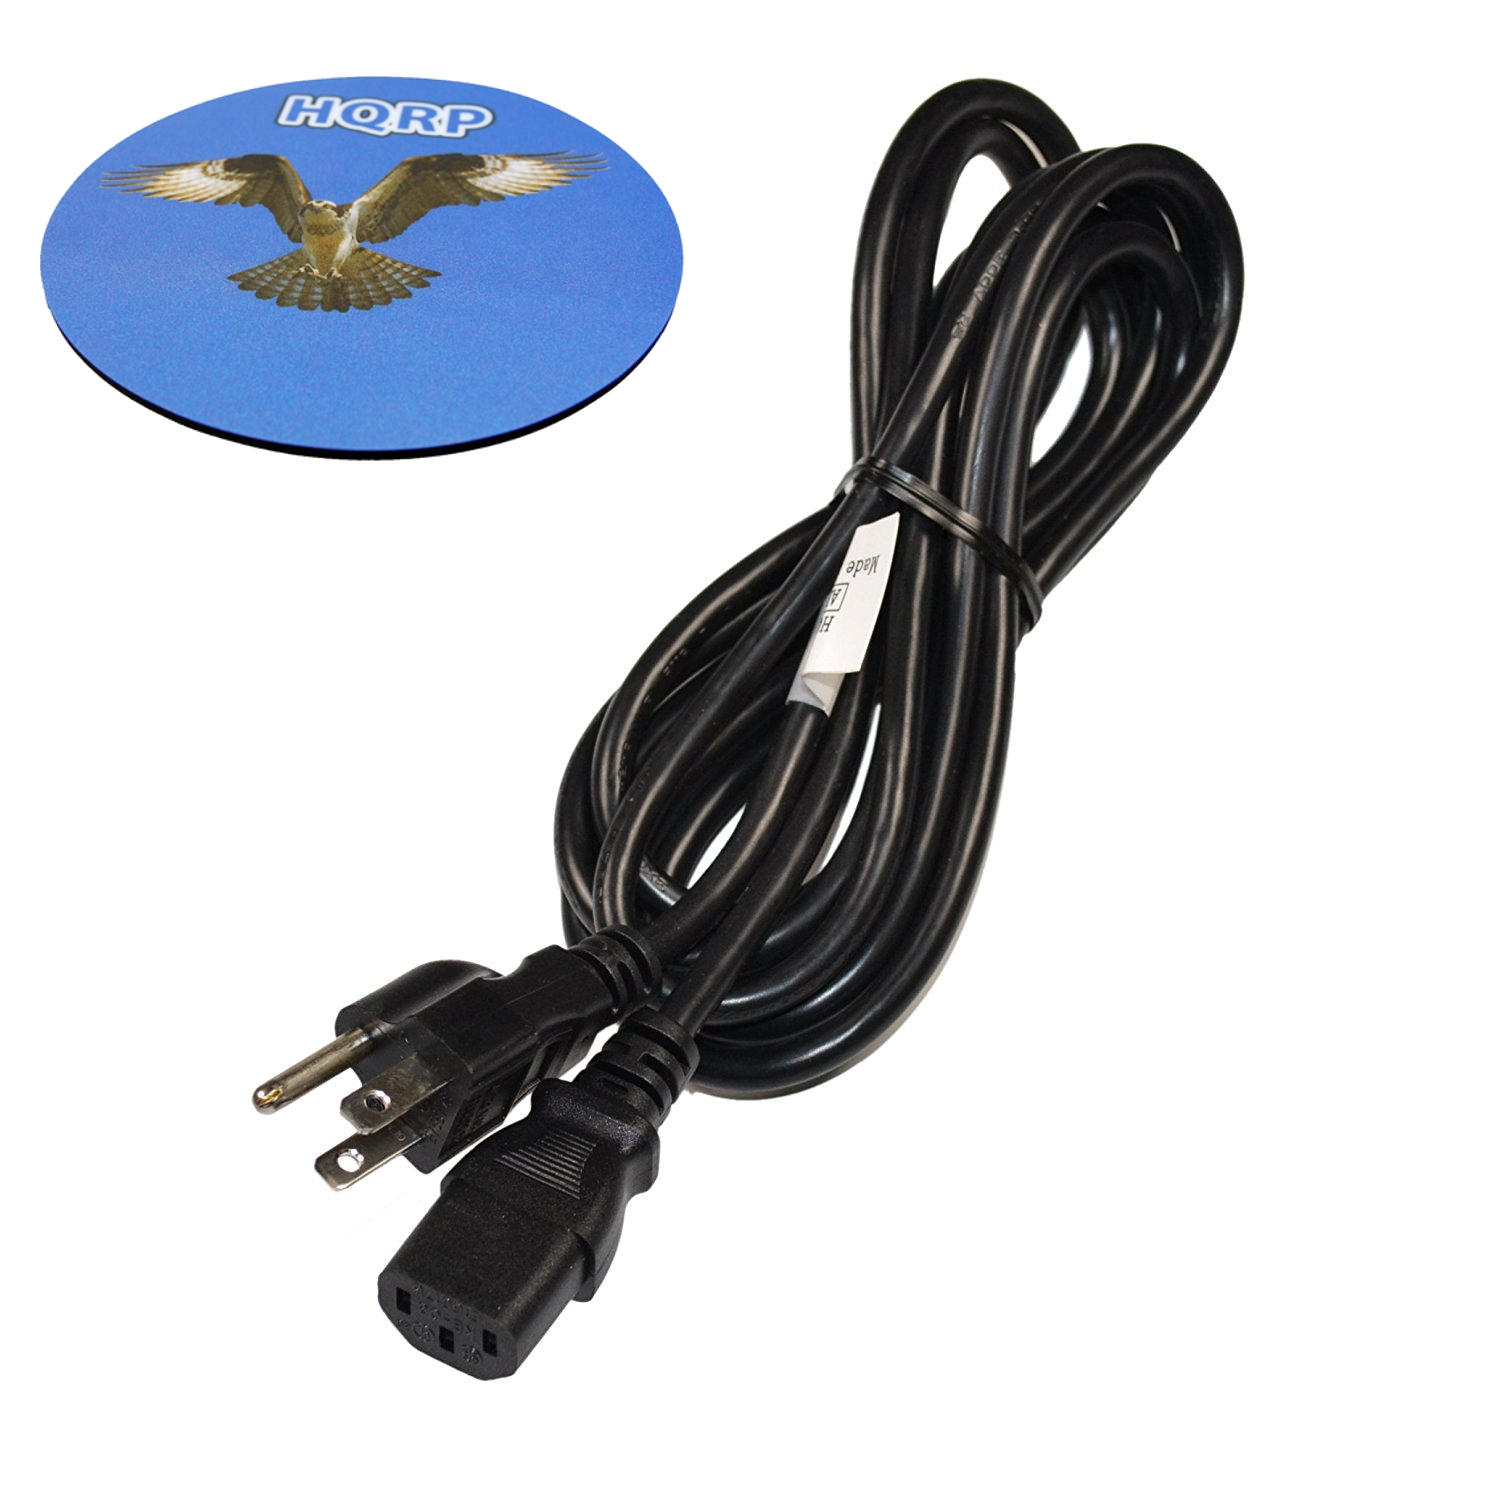 HQRP 10ft AC Power Cord for Ion Blockrocker Tailgate Bluetooth Speaker Mains Cable iPA77 + HQRP Coaster